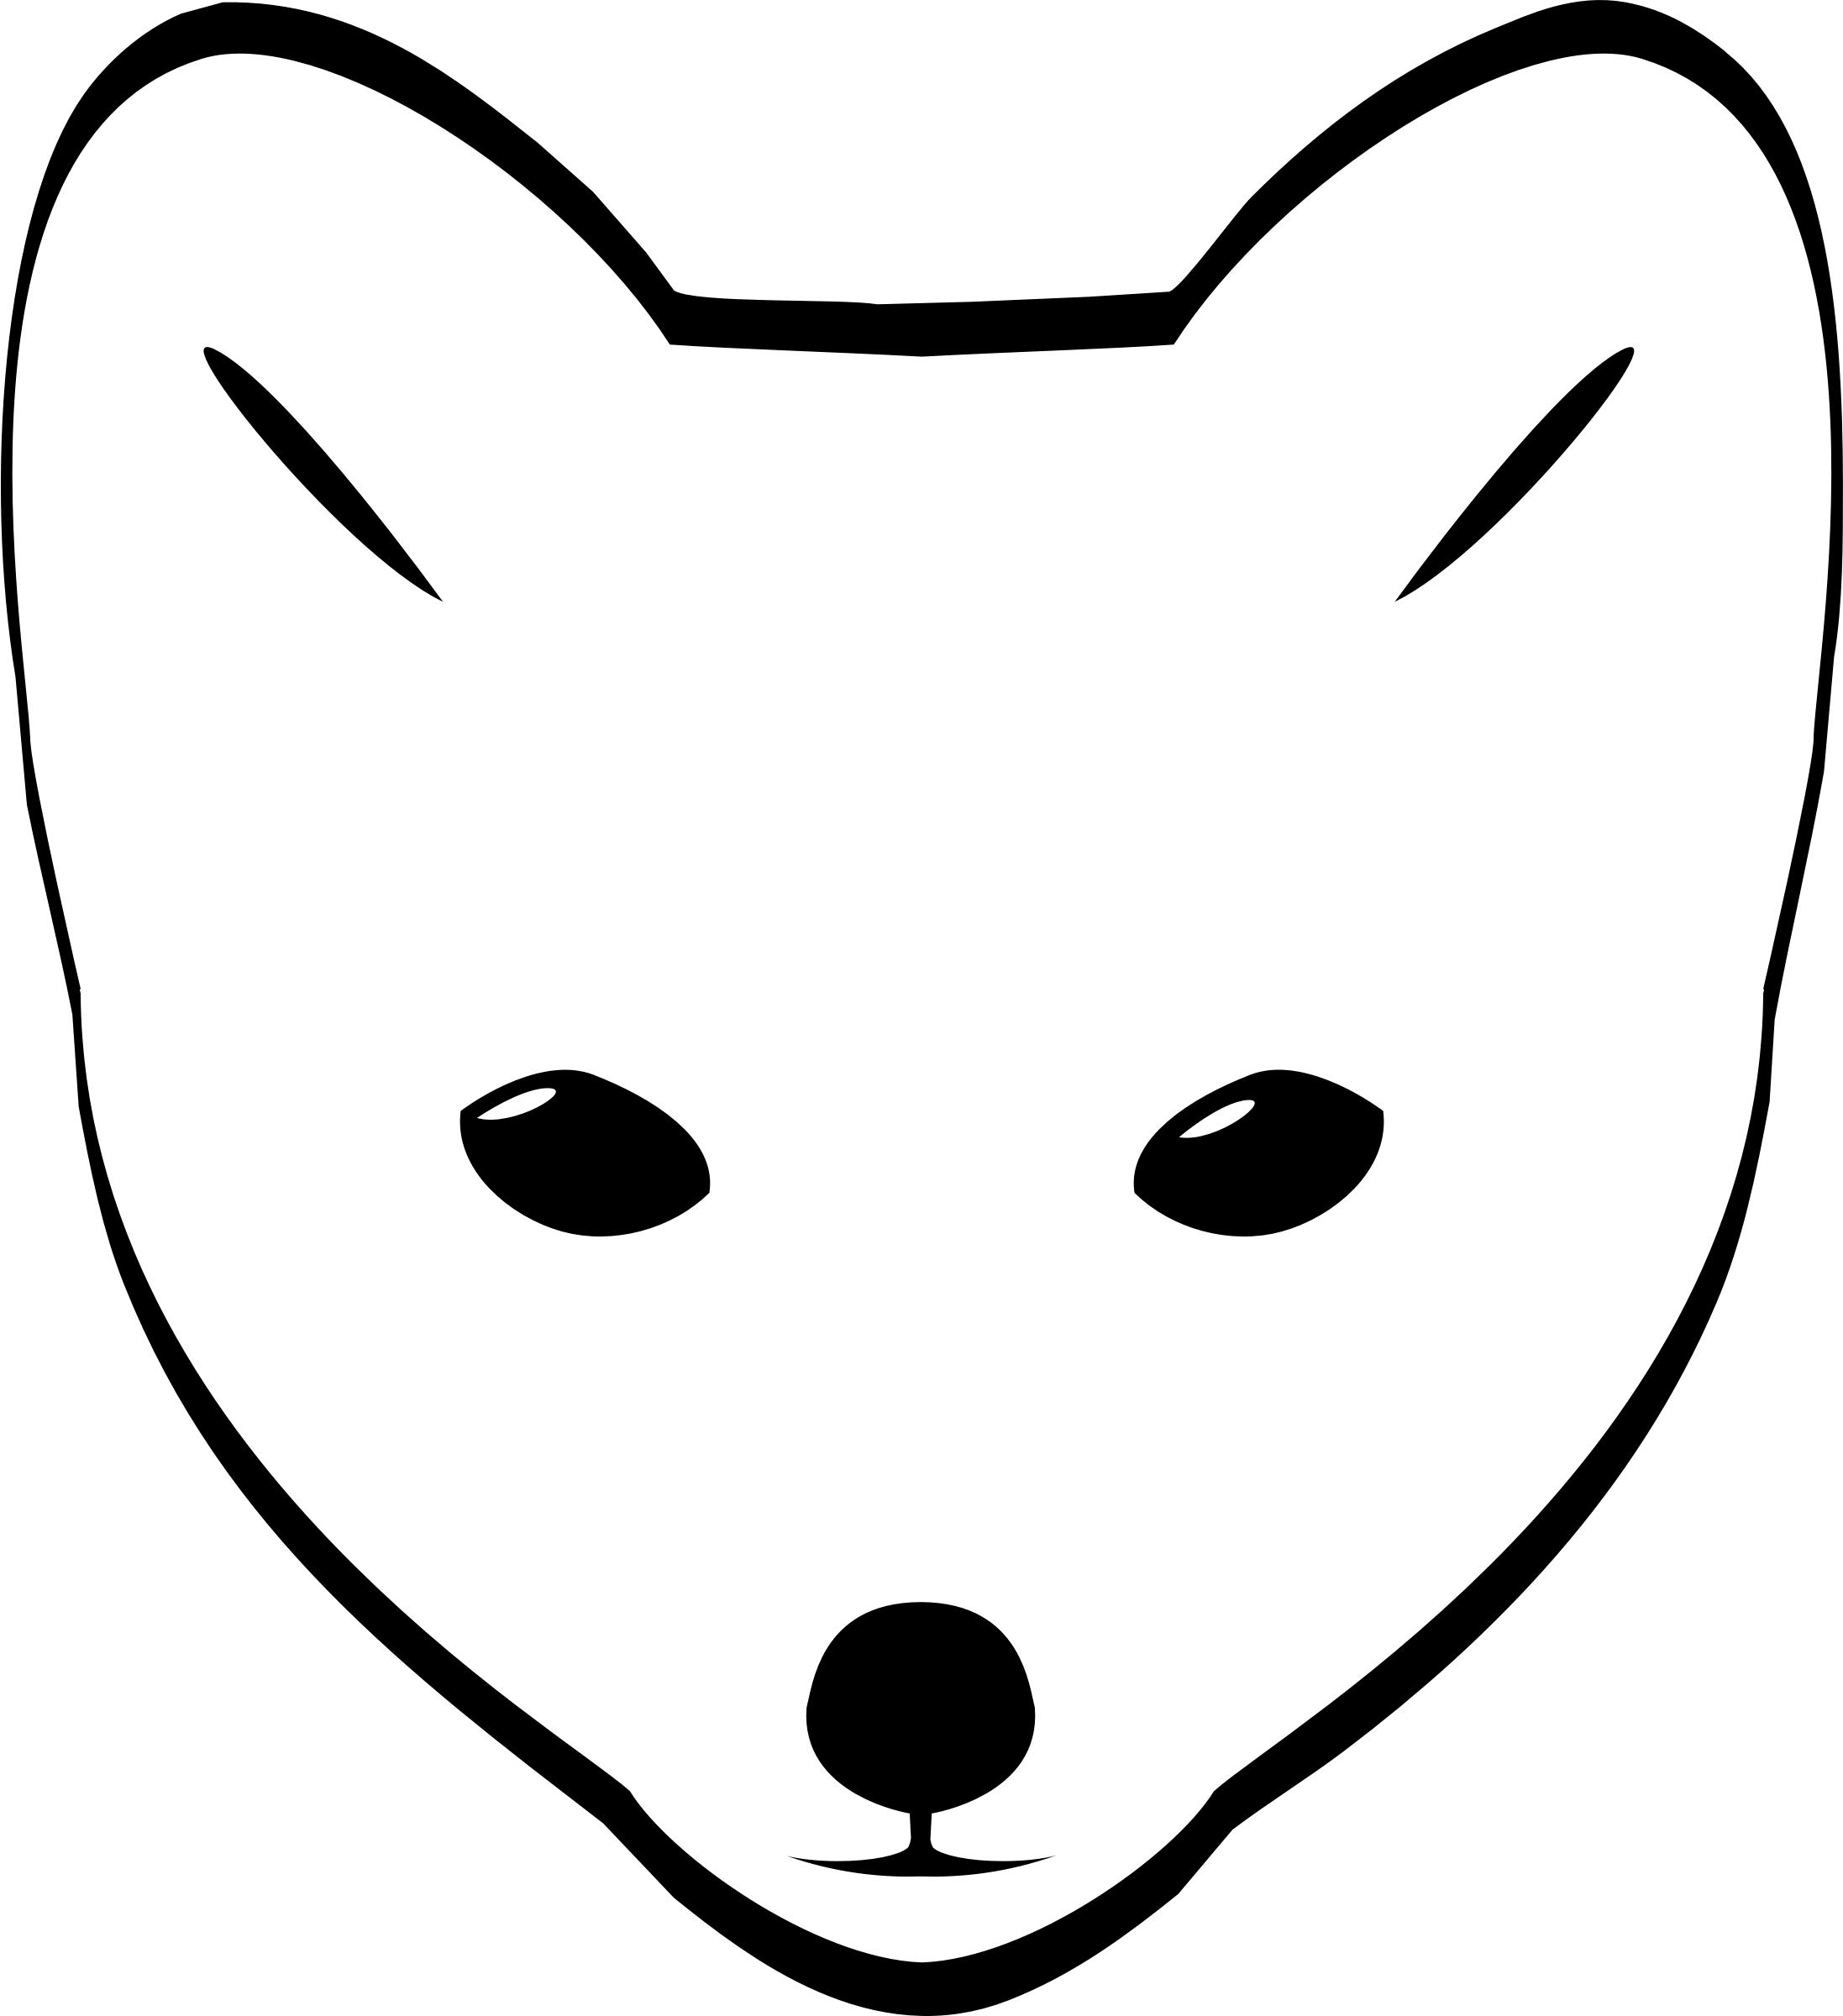 Polar Fox clipart #10, Download drawings